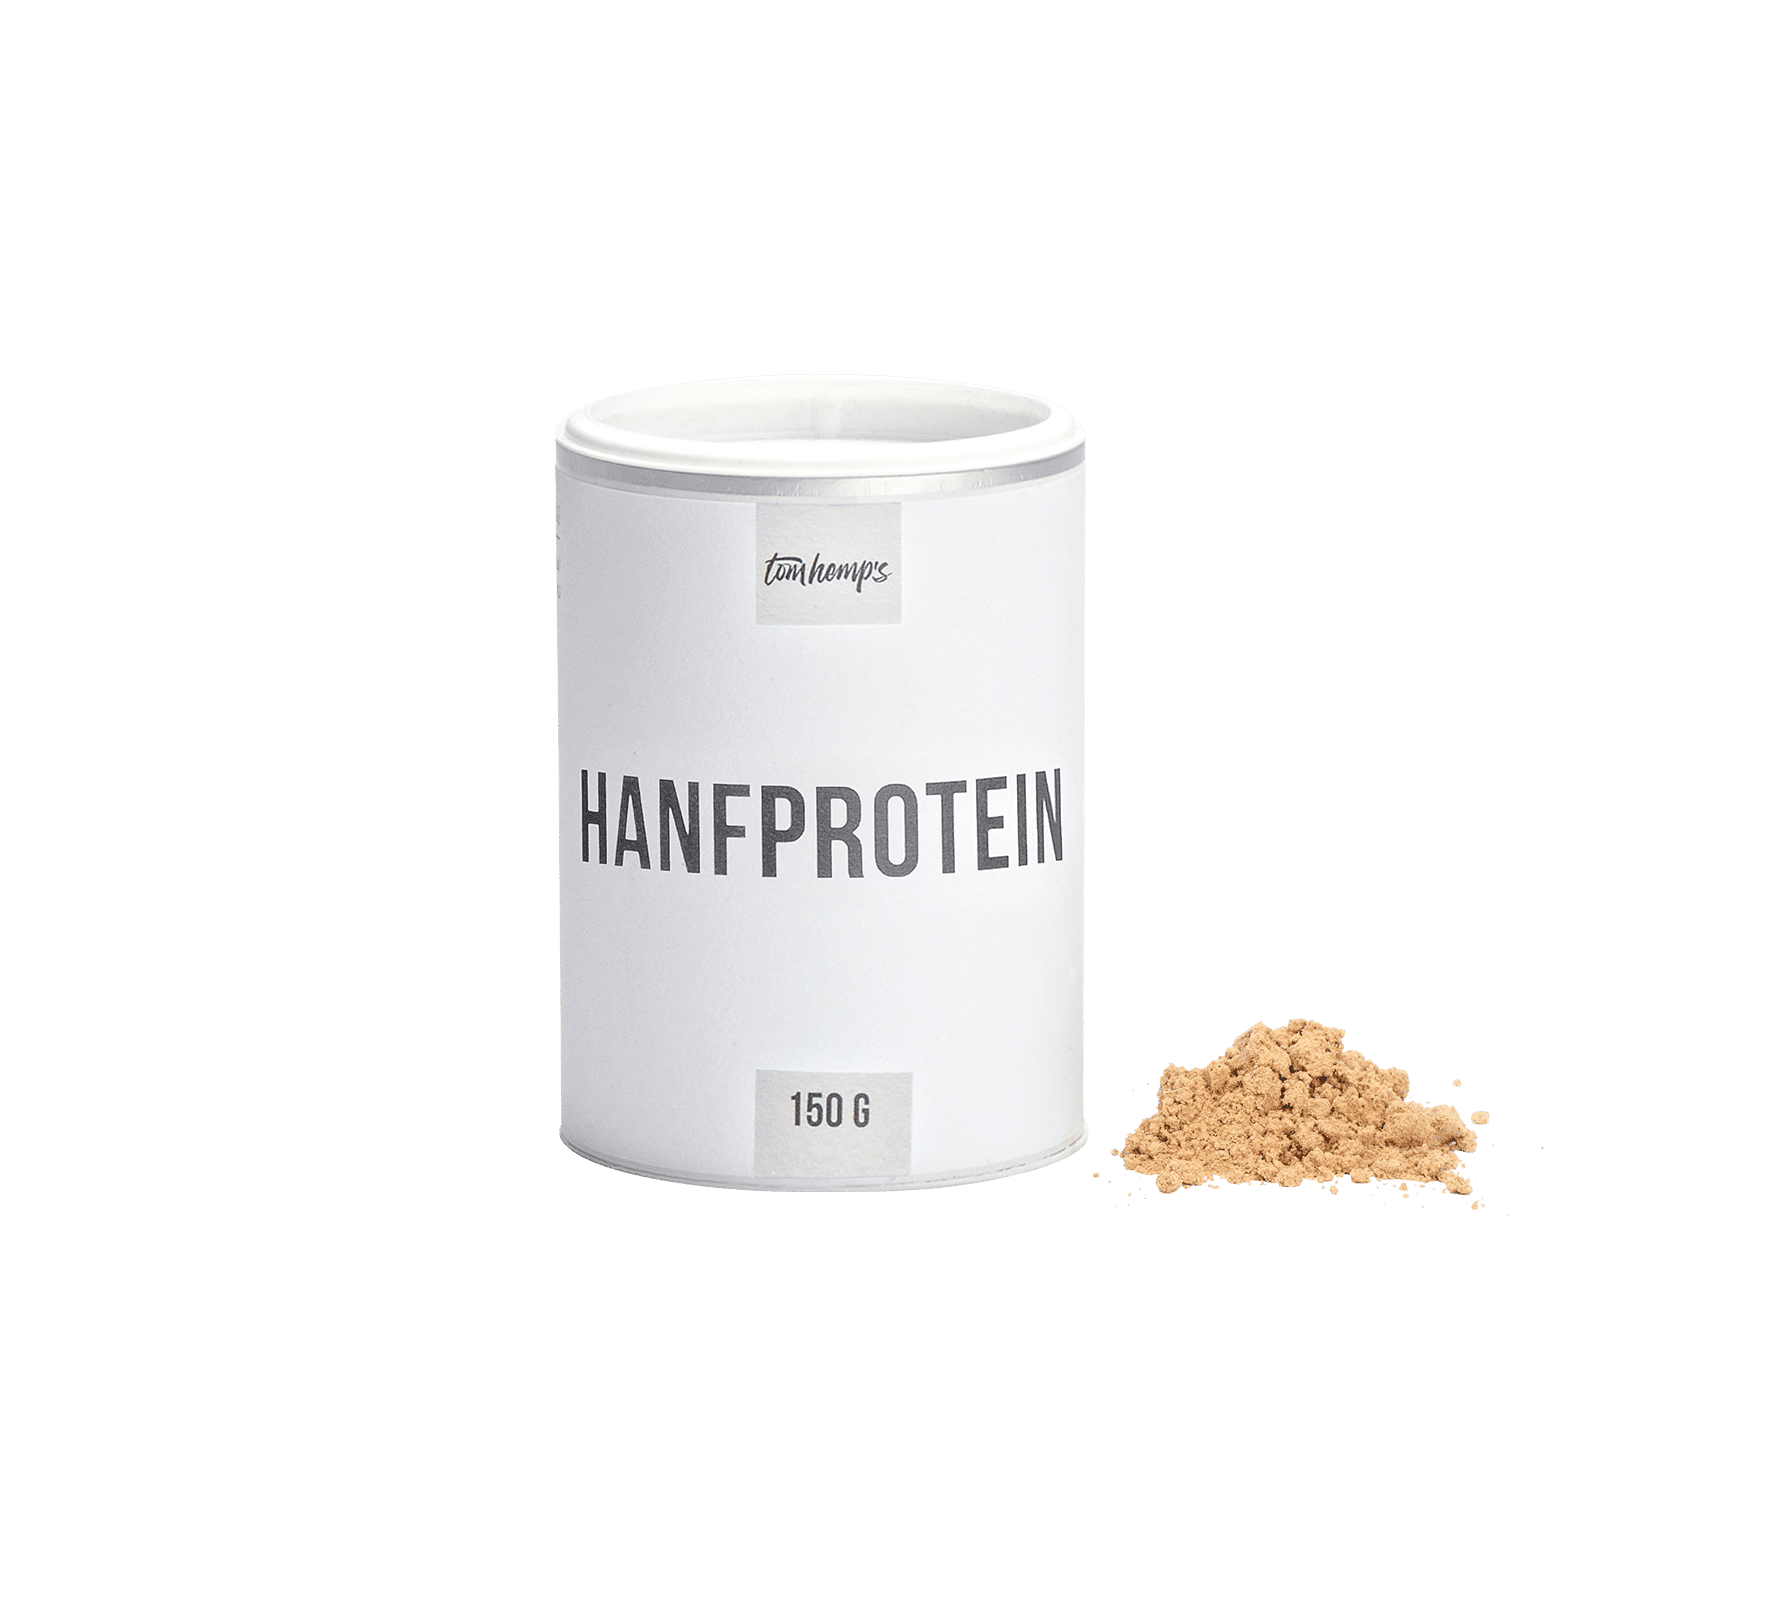 TomHemps_Hanfprotein_Desktop_Detail_HD_1780x1600